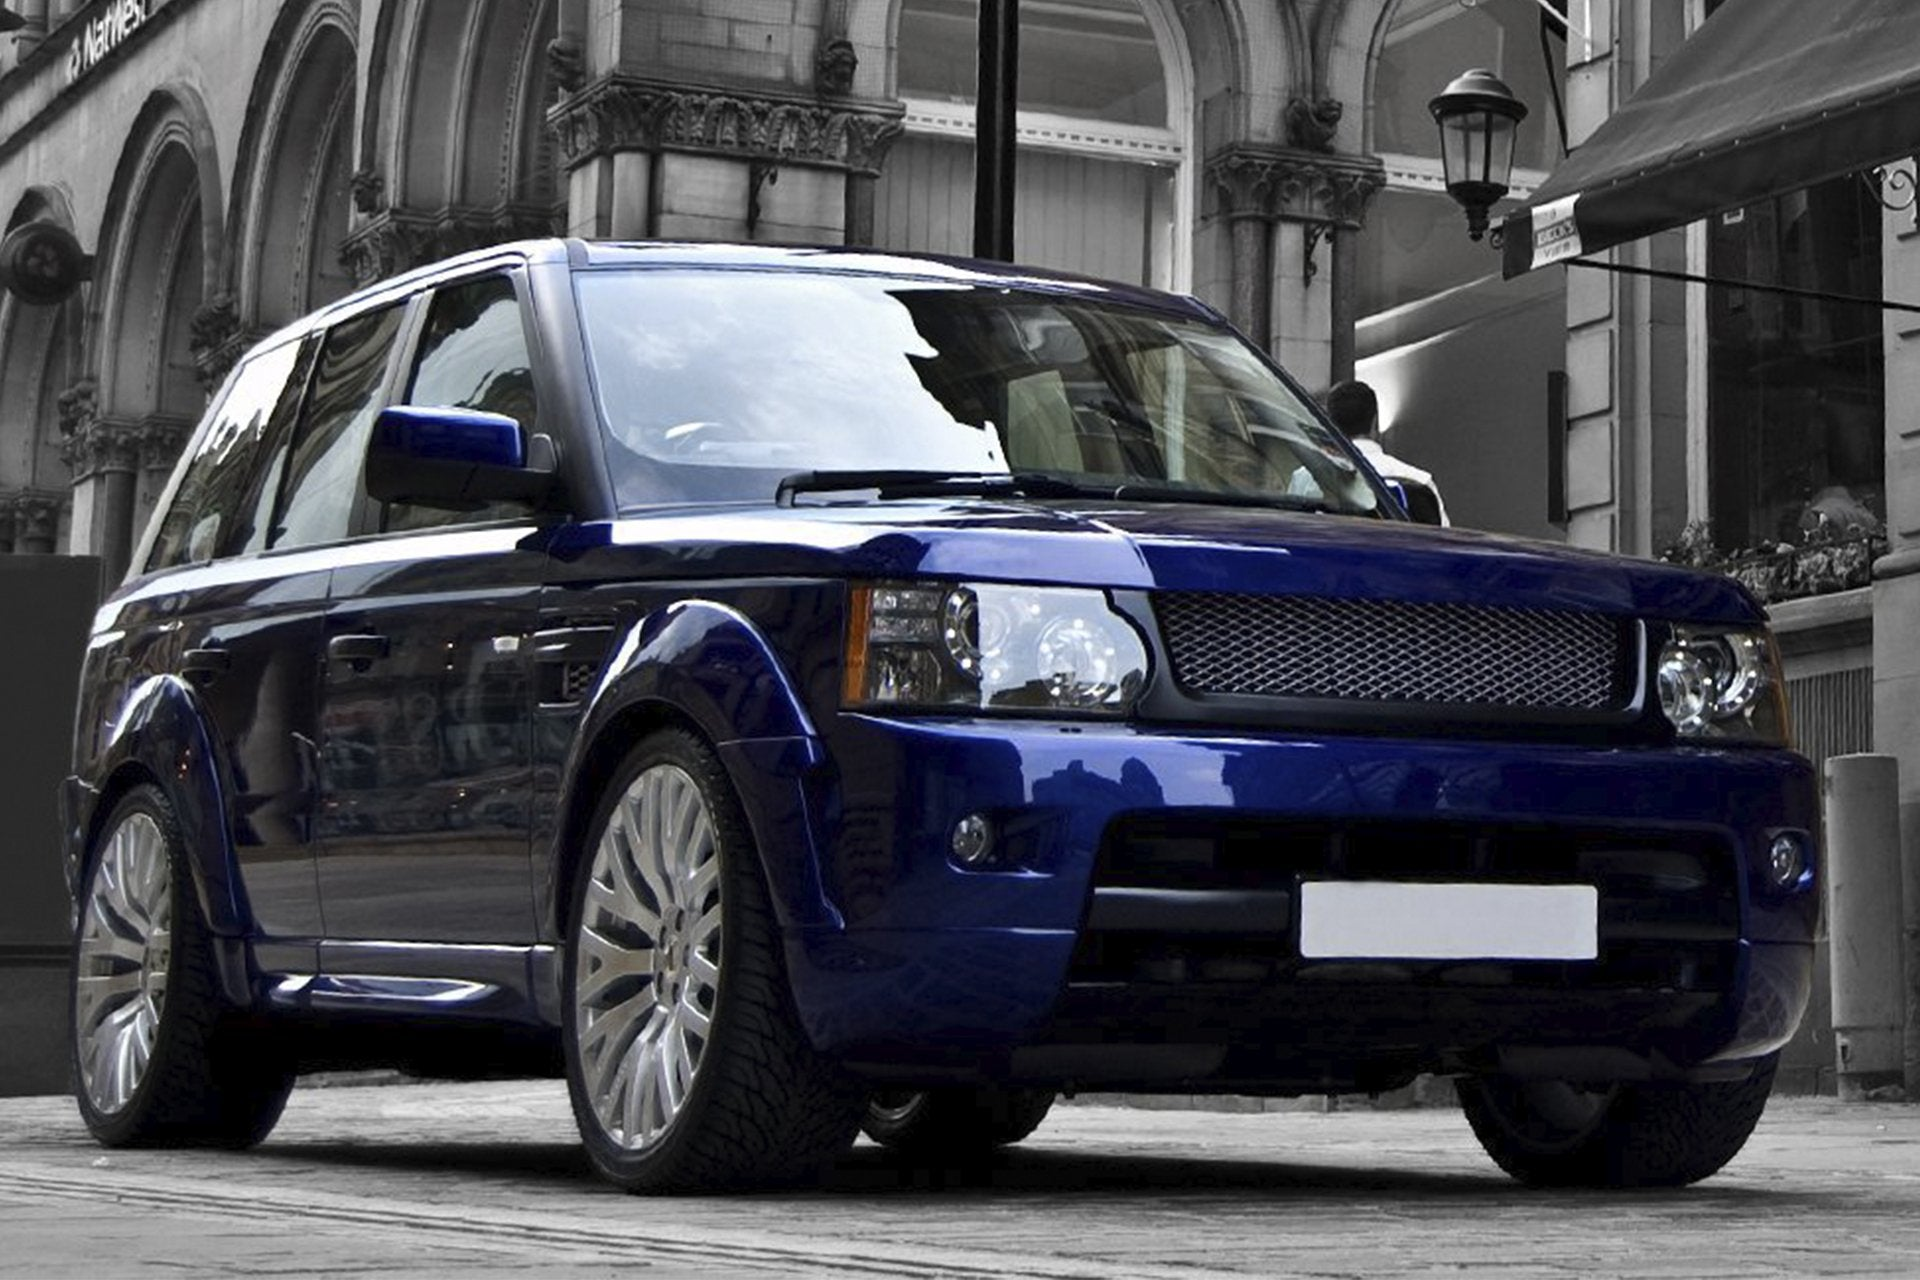 Range Rover Sport (2010-2013) Signature Exterior Body Styling Pack by Kahn - Image 1982